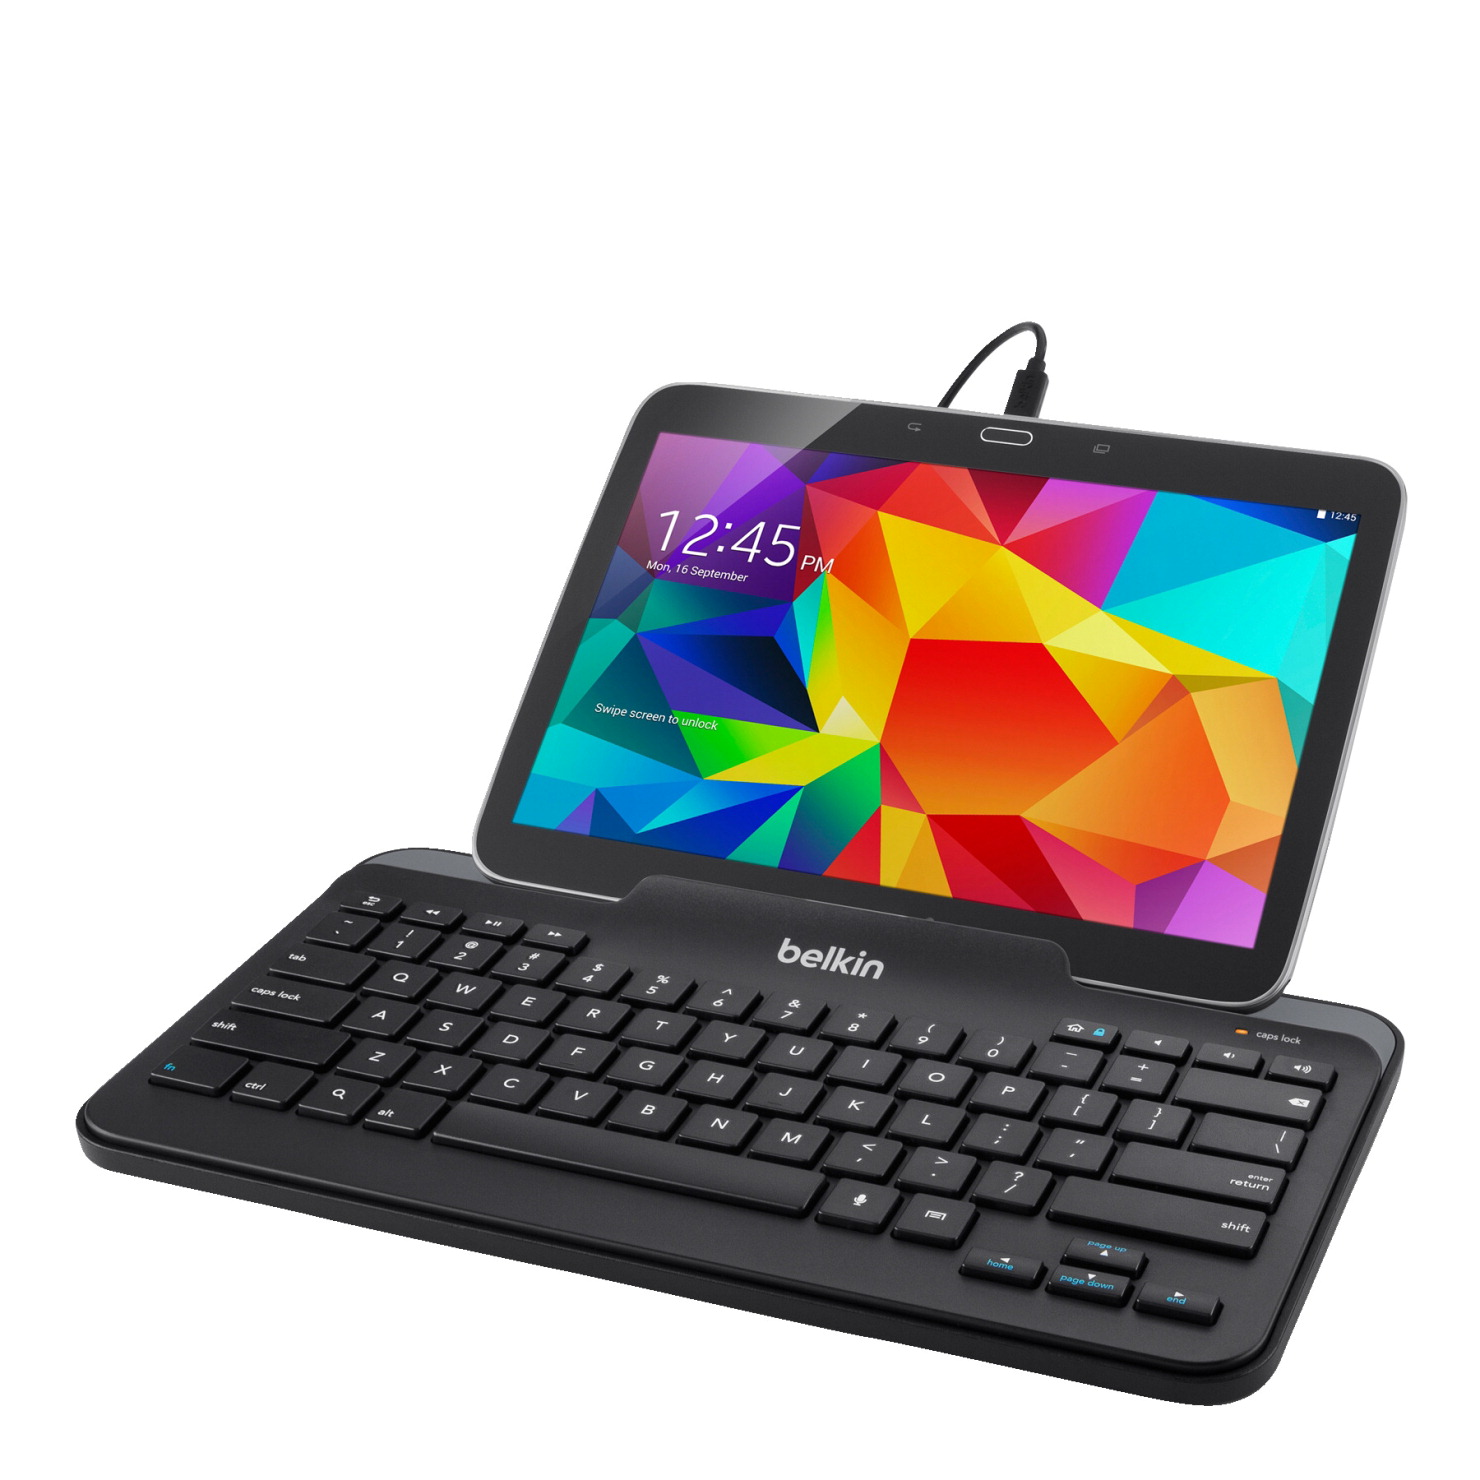 Belkin Bluetooth Keyboard Pairing Android: Belkin B2B132 Wired Keyboard With Stand For Android, 5 Pin Micro-USB